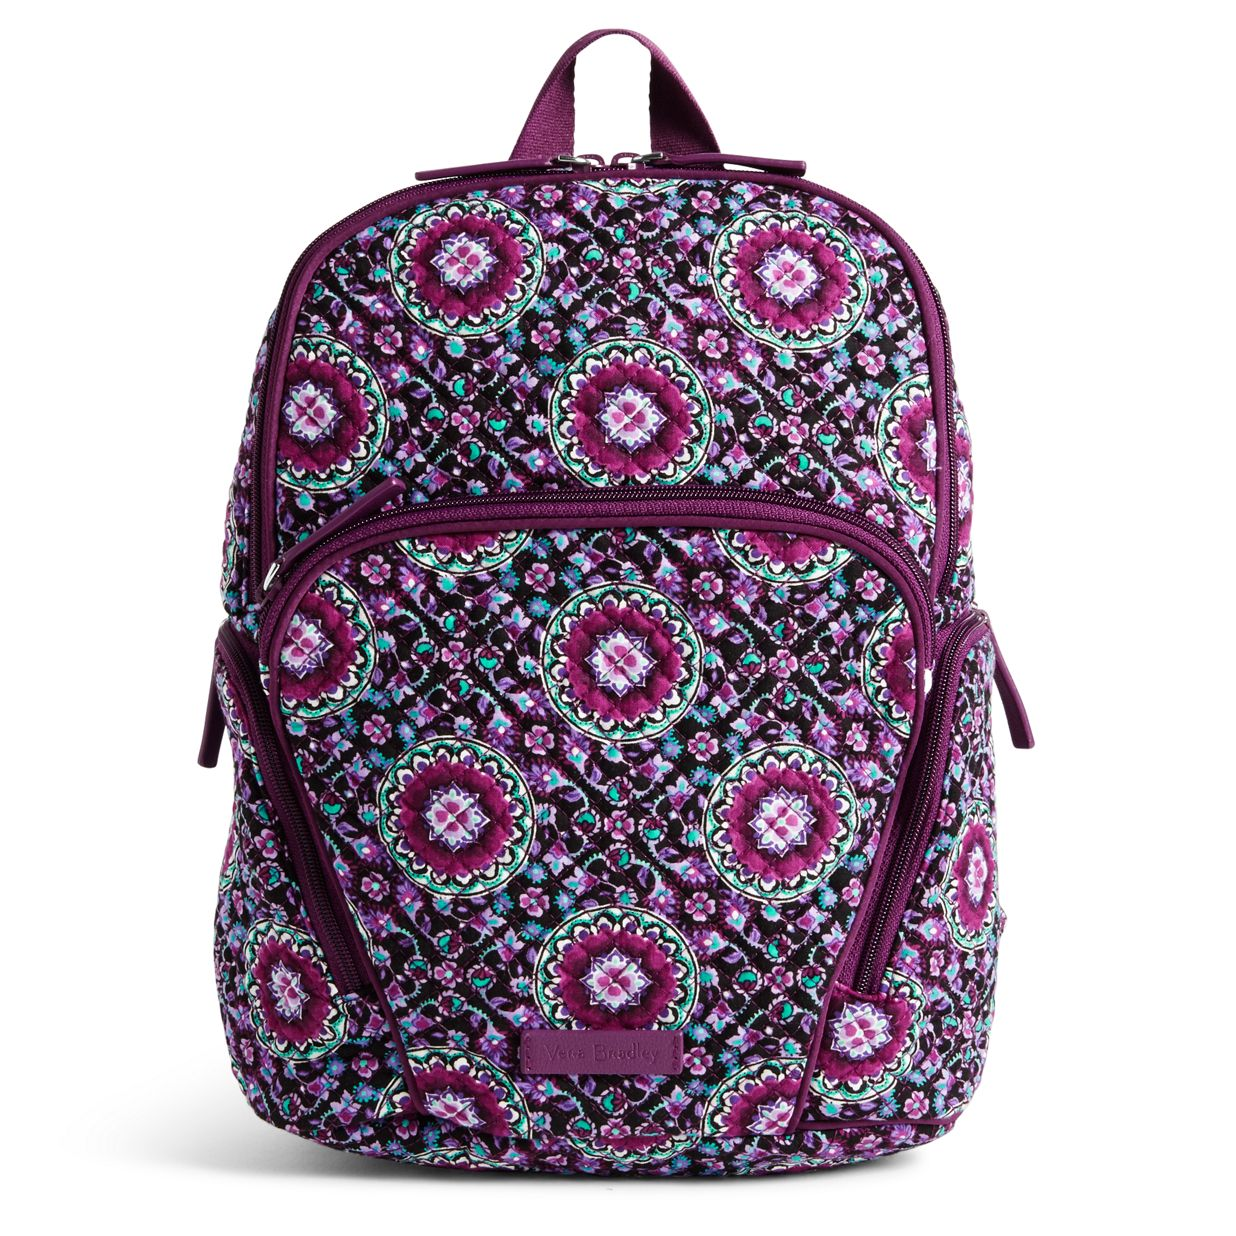 Image of Hadley Backpack in Lilac Medallion ... 2125d22056b5f